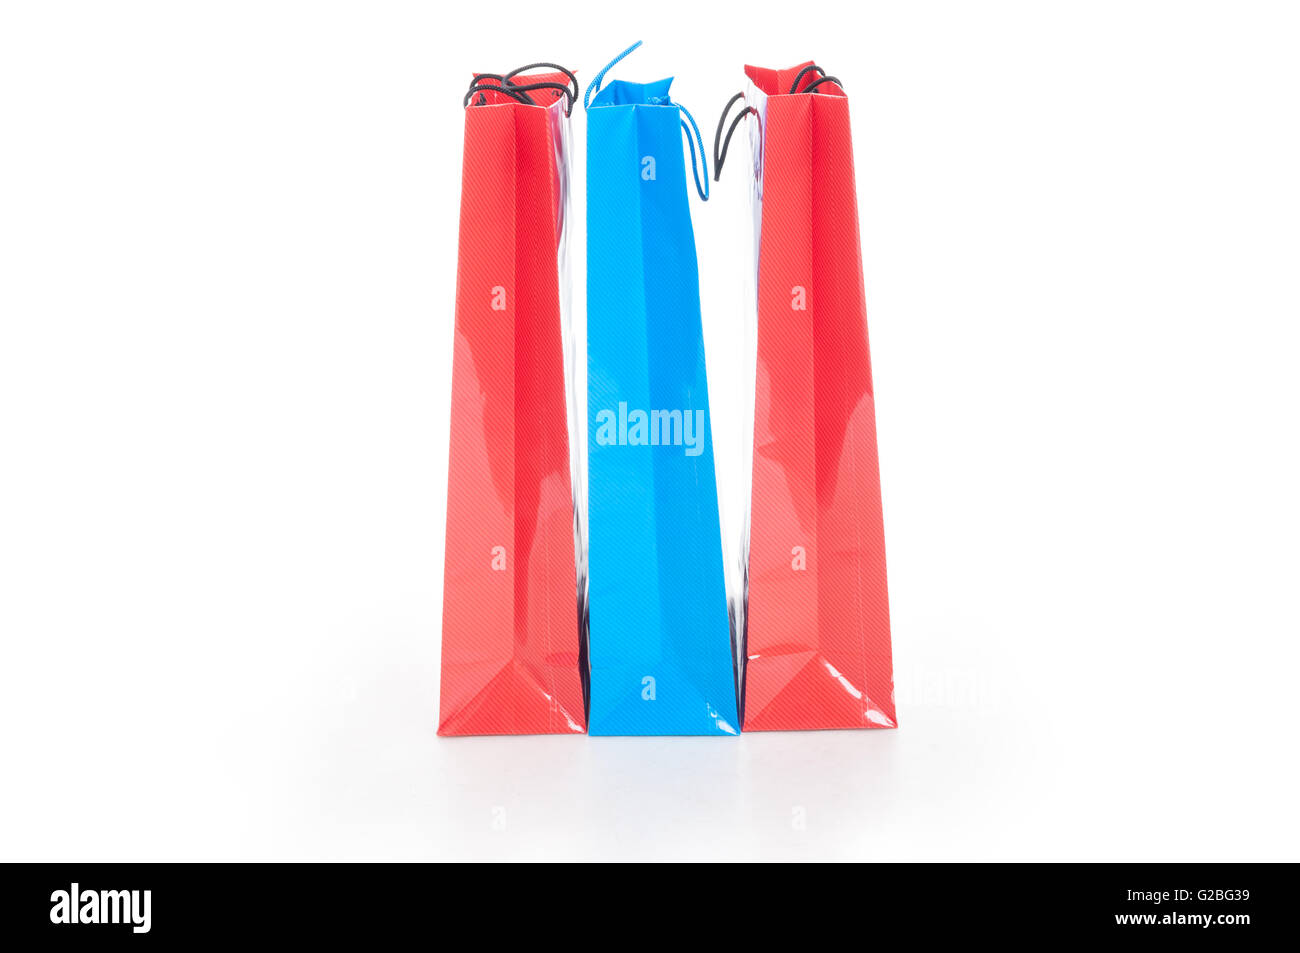 Consumerism and shopping concept with multi colored paper bags isolated on white background - Stock Image